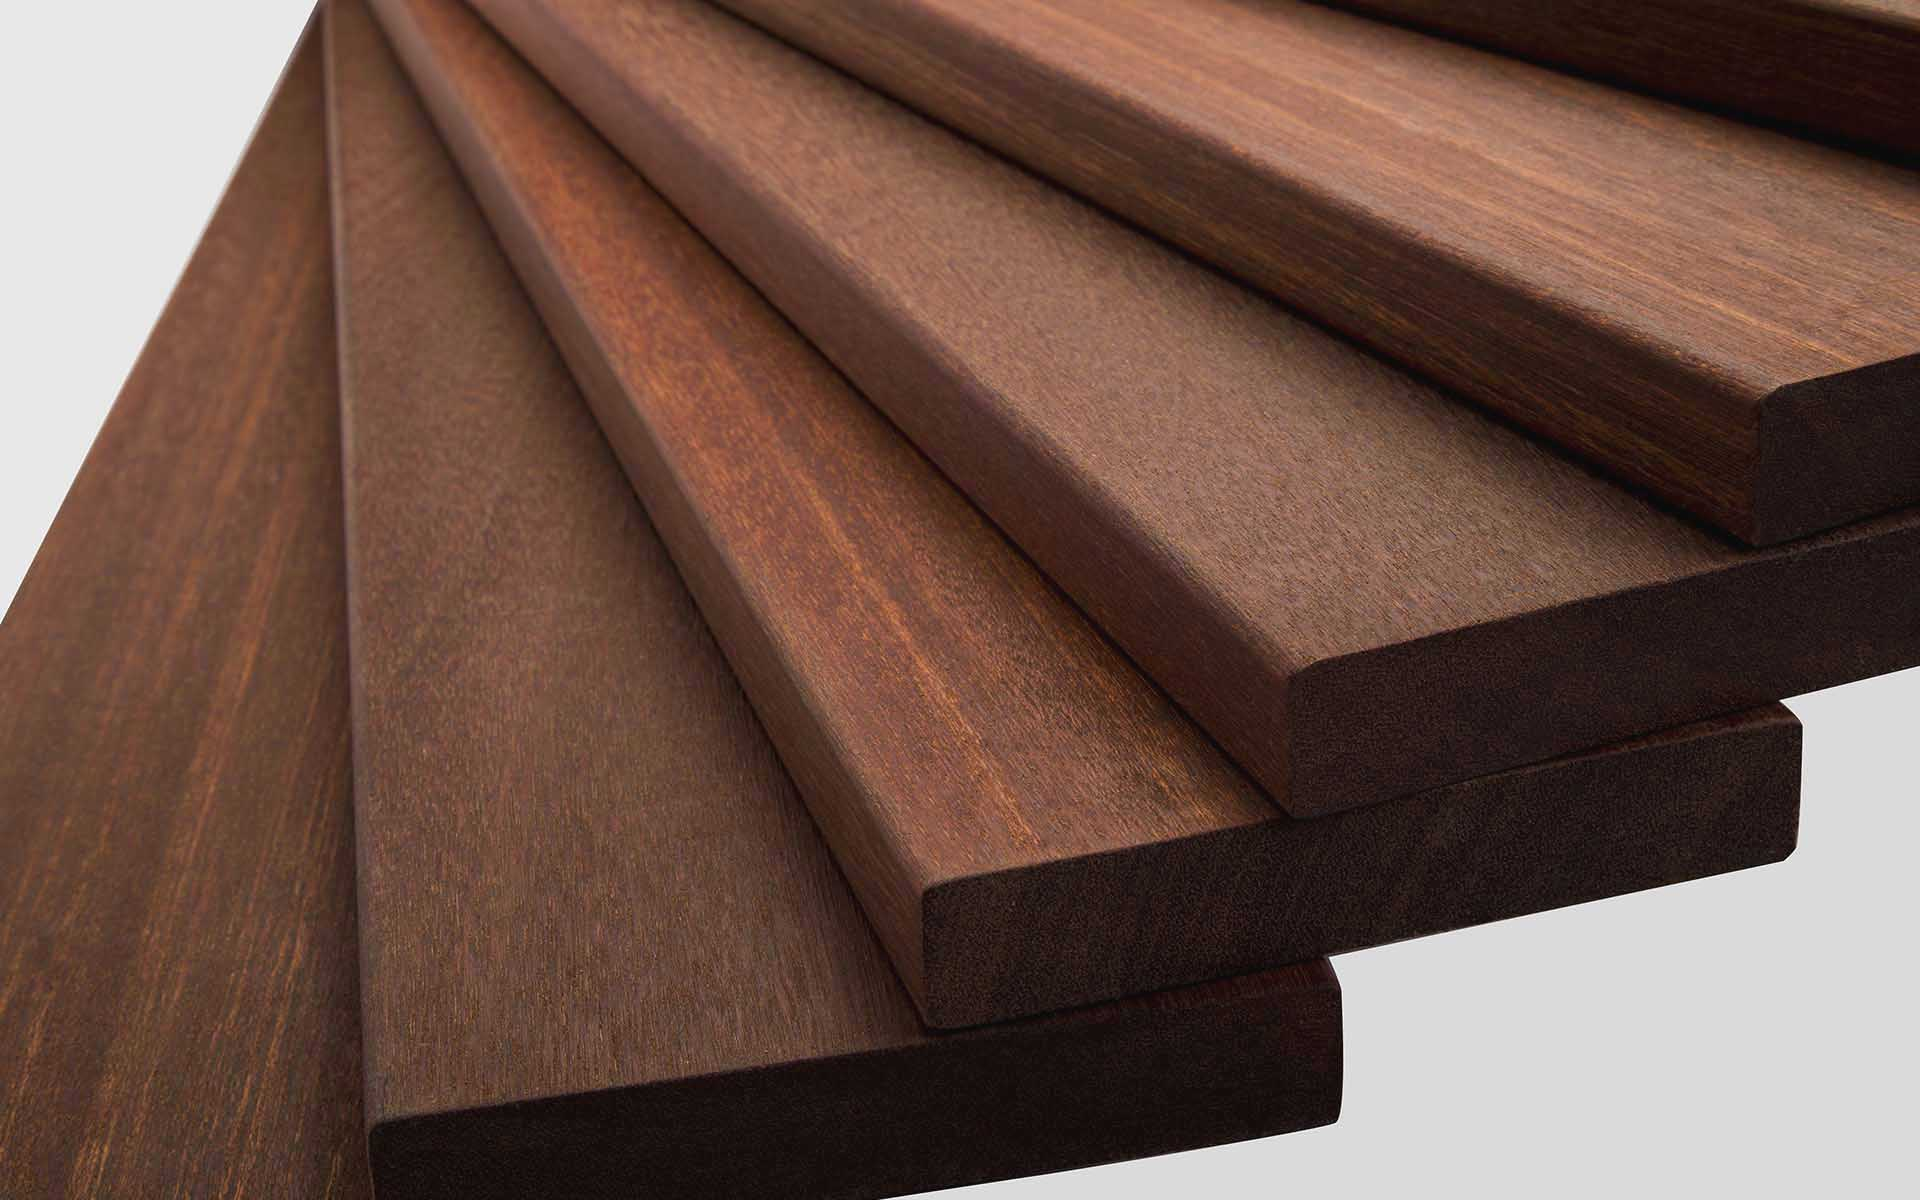 06. Batu_Hardwood_Decking_CloseUp_54x6_B_Boards_NovaUSAWood.jpg